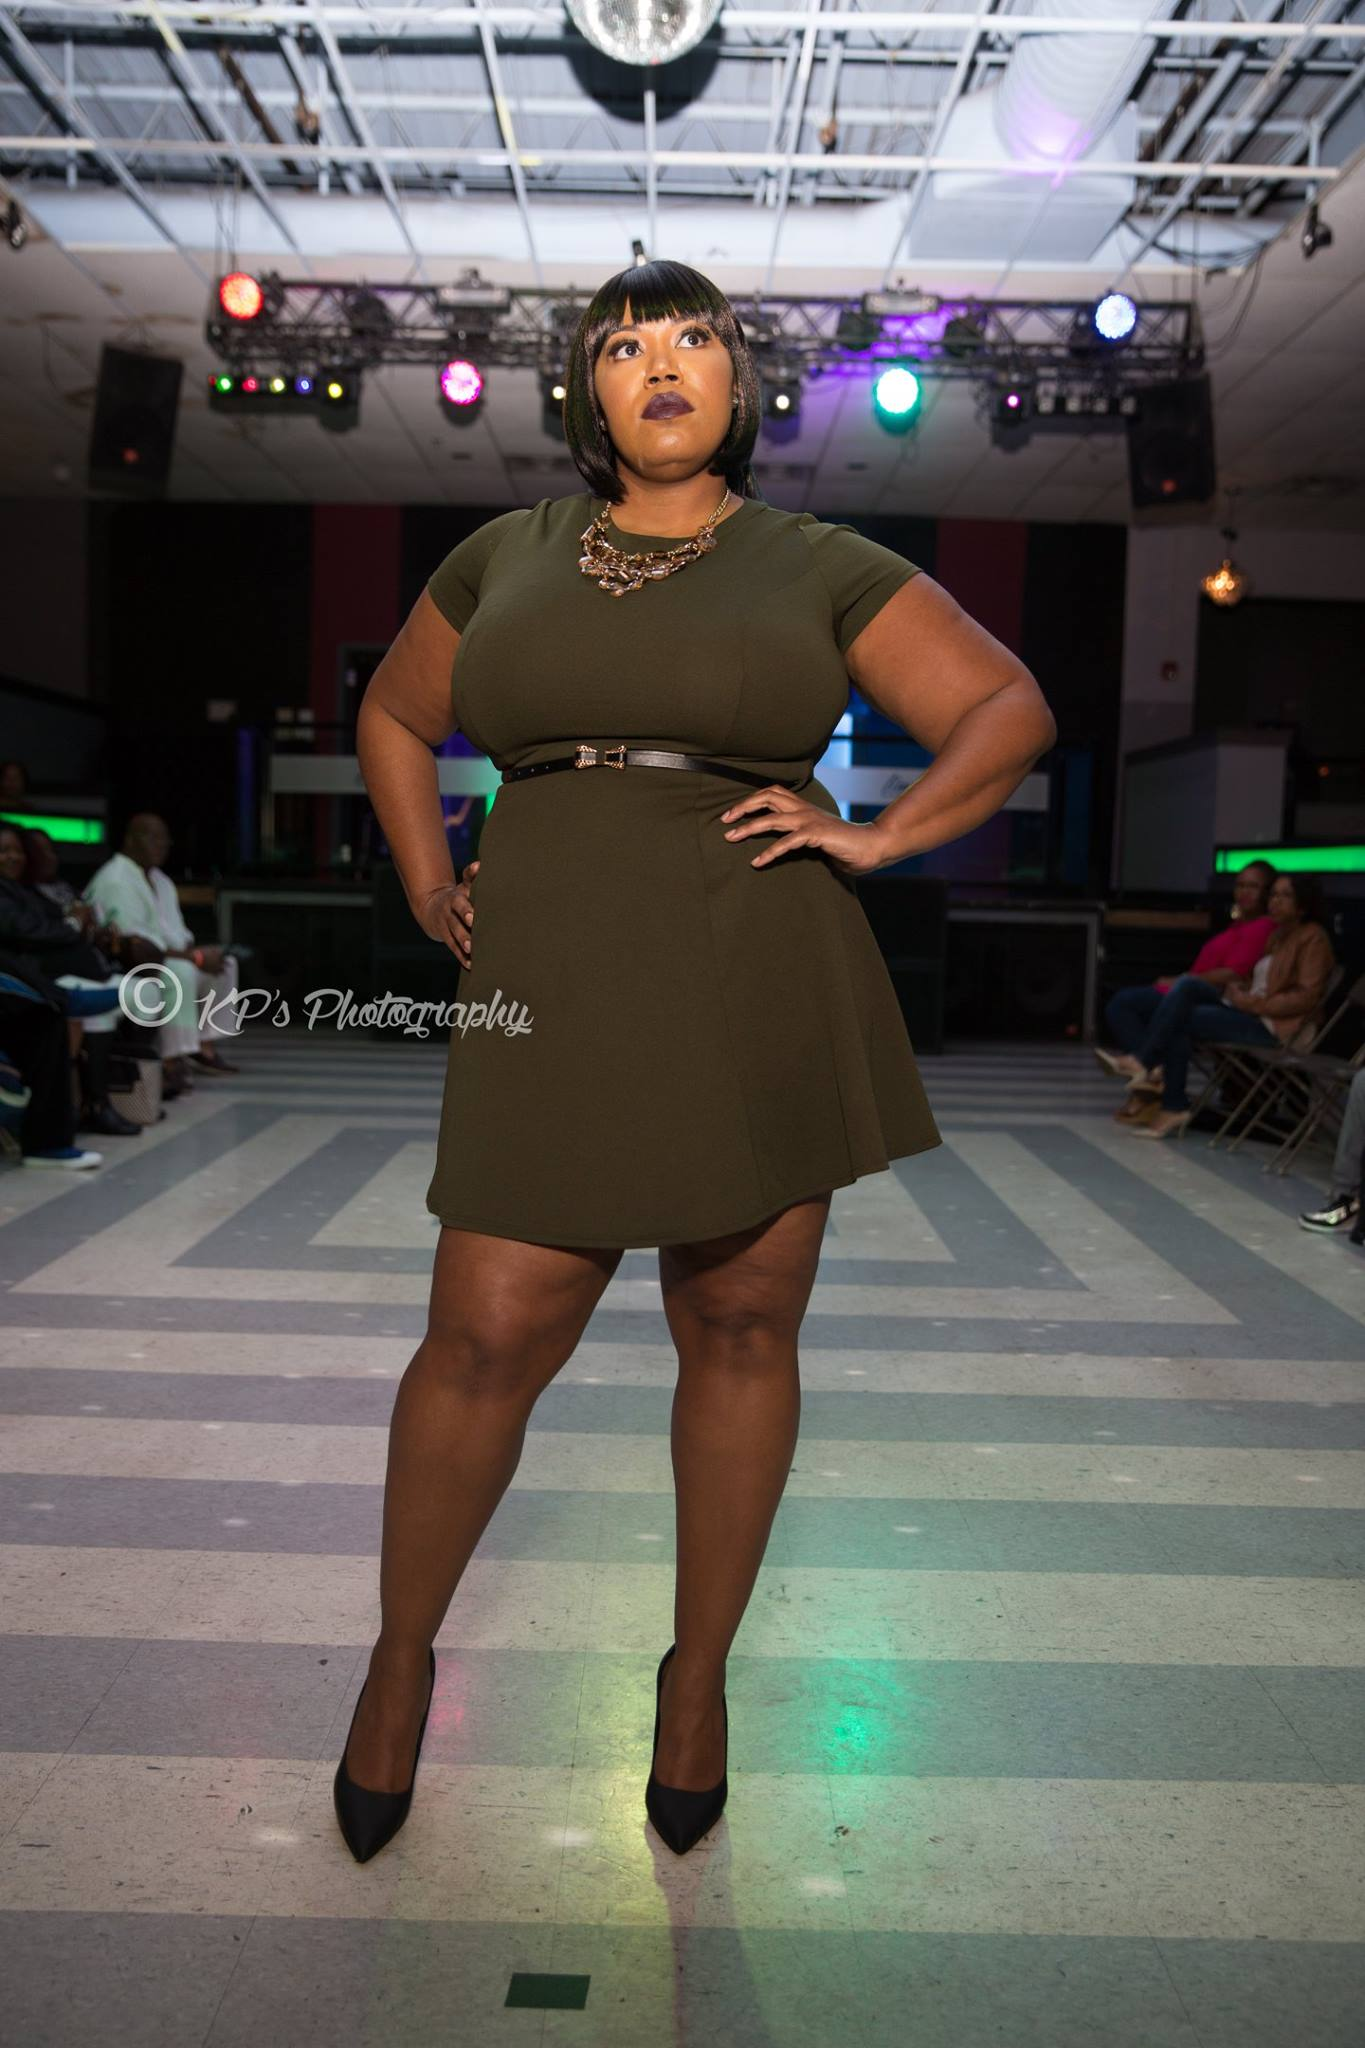 S/O to Kenneth Parks of KP's Photography for taking these amazing pictures of the curvy models working the catwalk. Check out more from him on his page  here .